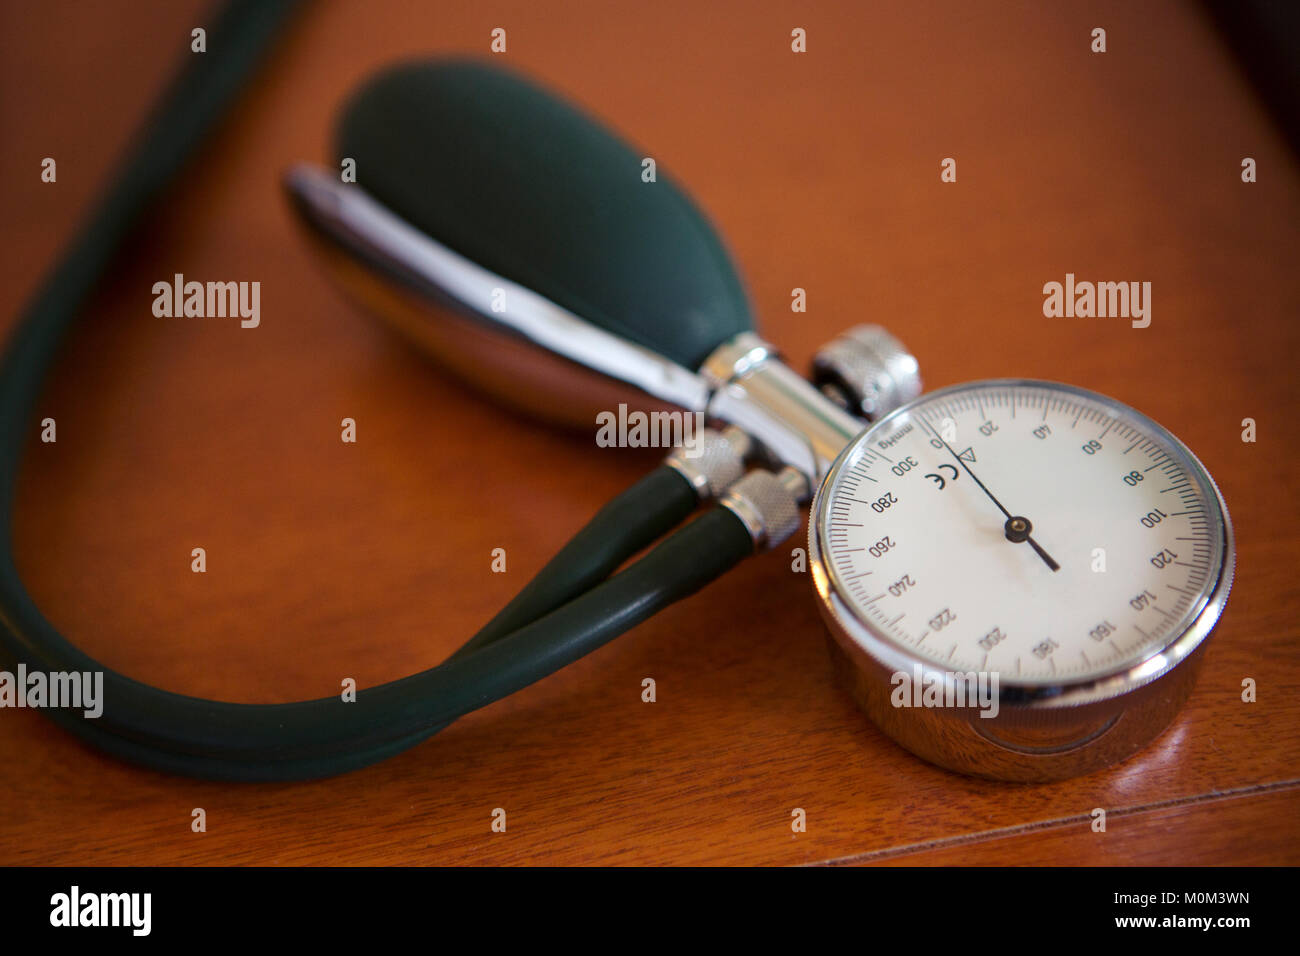 Sphygmomanometer of a blood pressure measuring device used in a healthcare setting - Stock Image